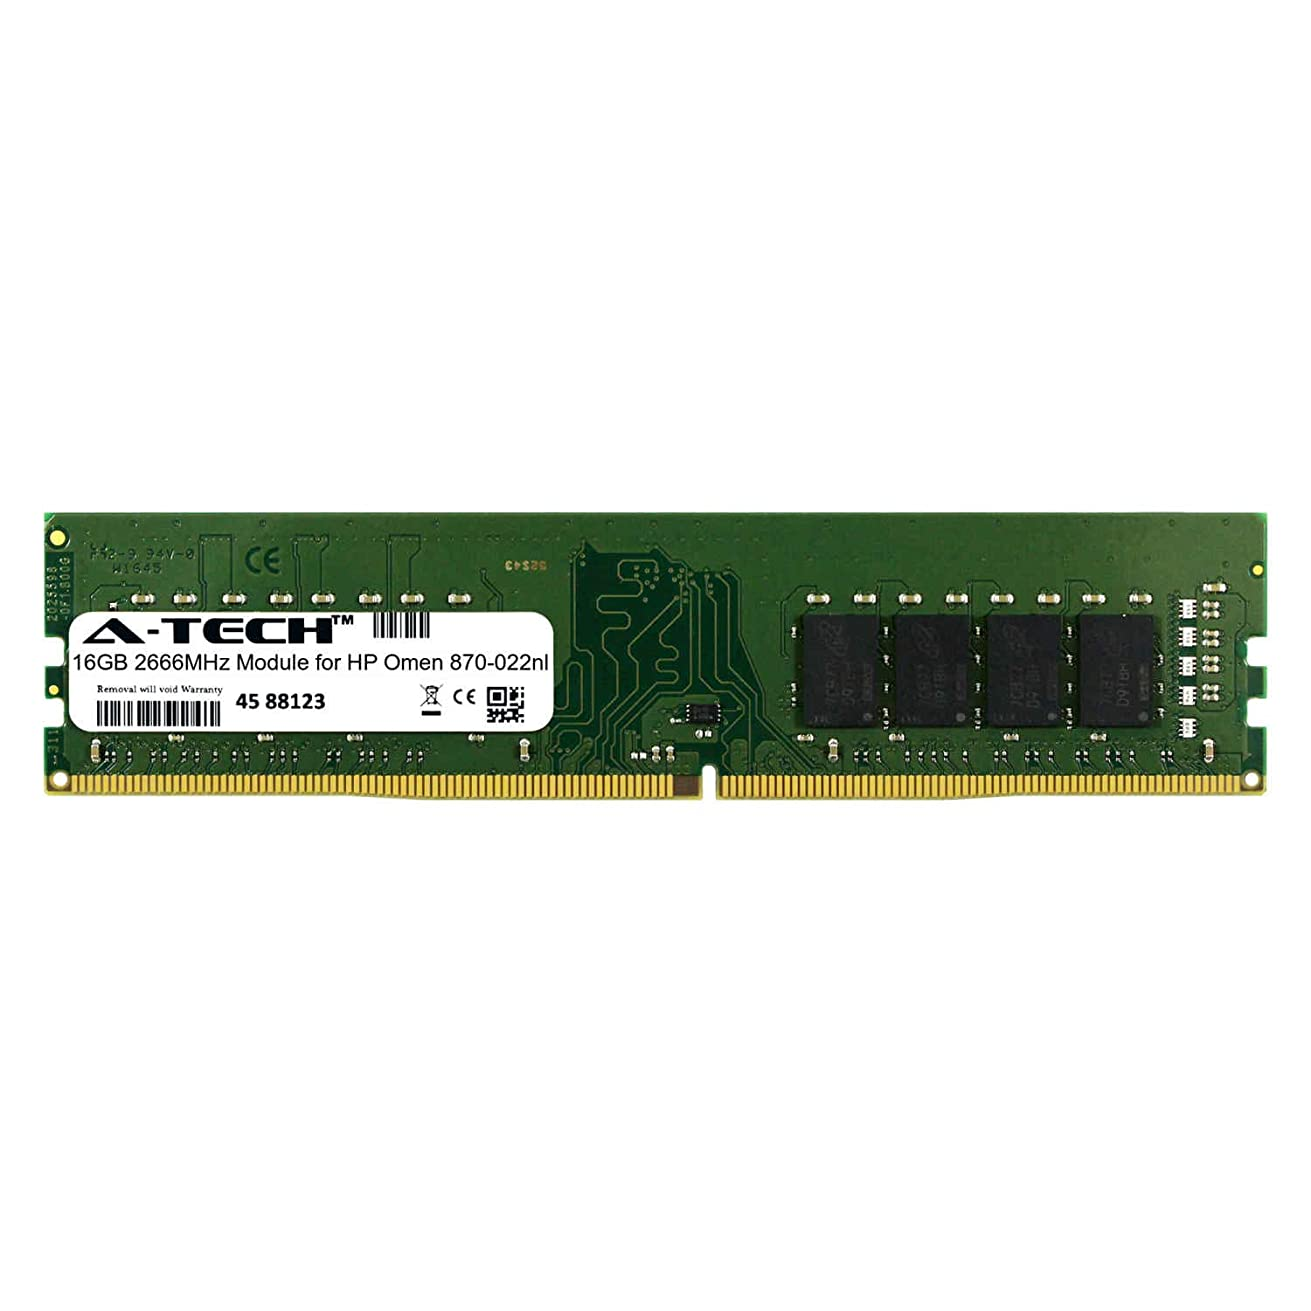 A-Tech 16GB Module for HP Omen 870-022nl Desktop & Workstation Motherboard Compatible DDR4 2666Mhz Memory Ram (ATMS282024A25823X1)